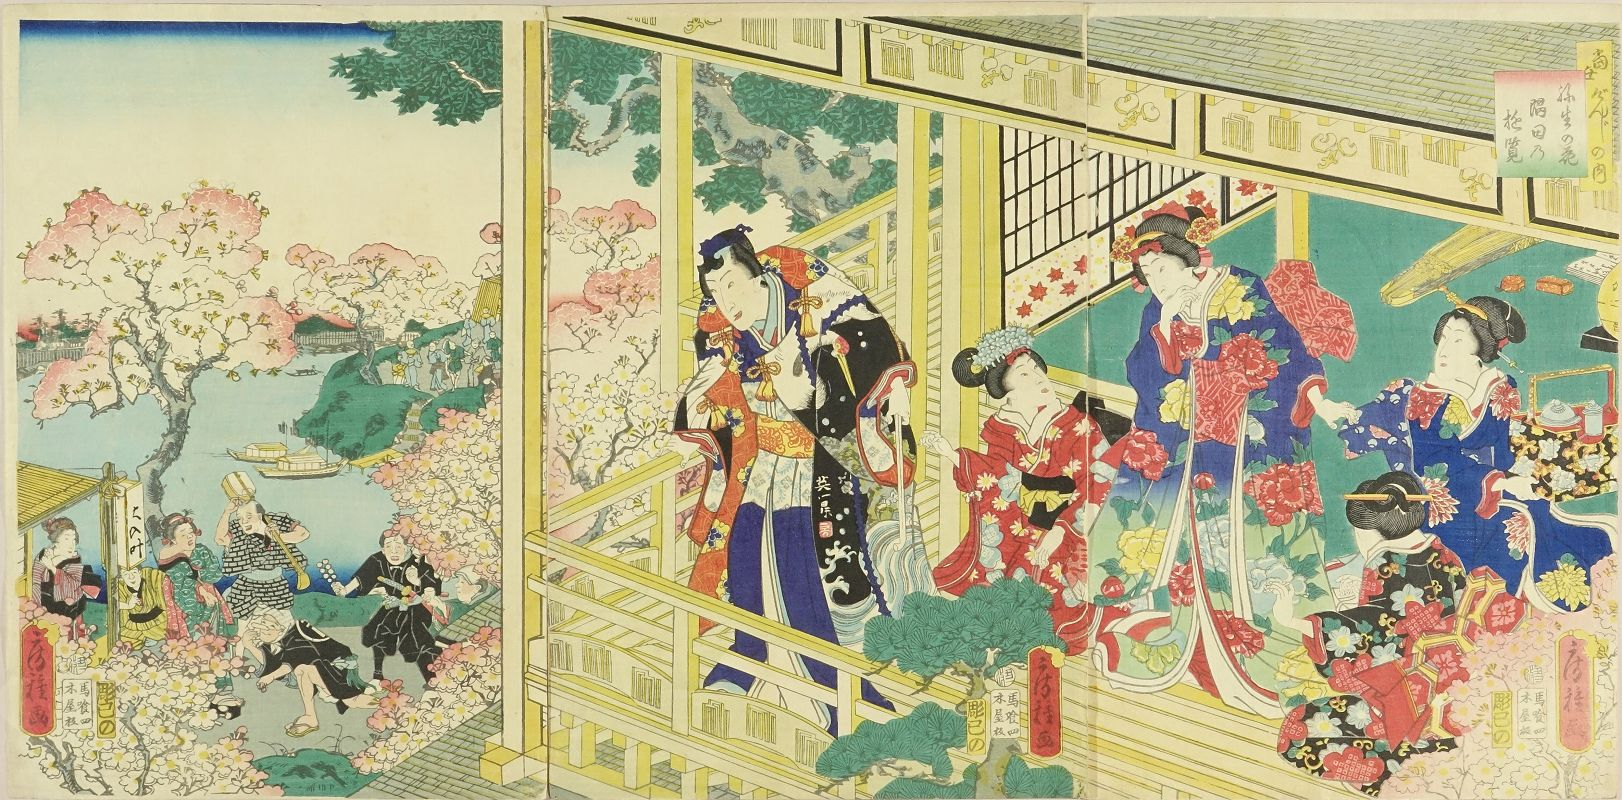 FUSATANE Genji and beauties on a terrace overlooking cherry blossom along Sumida River, triptych